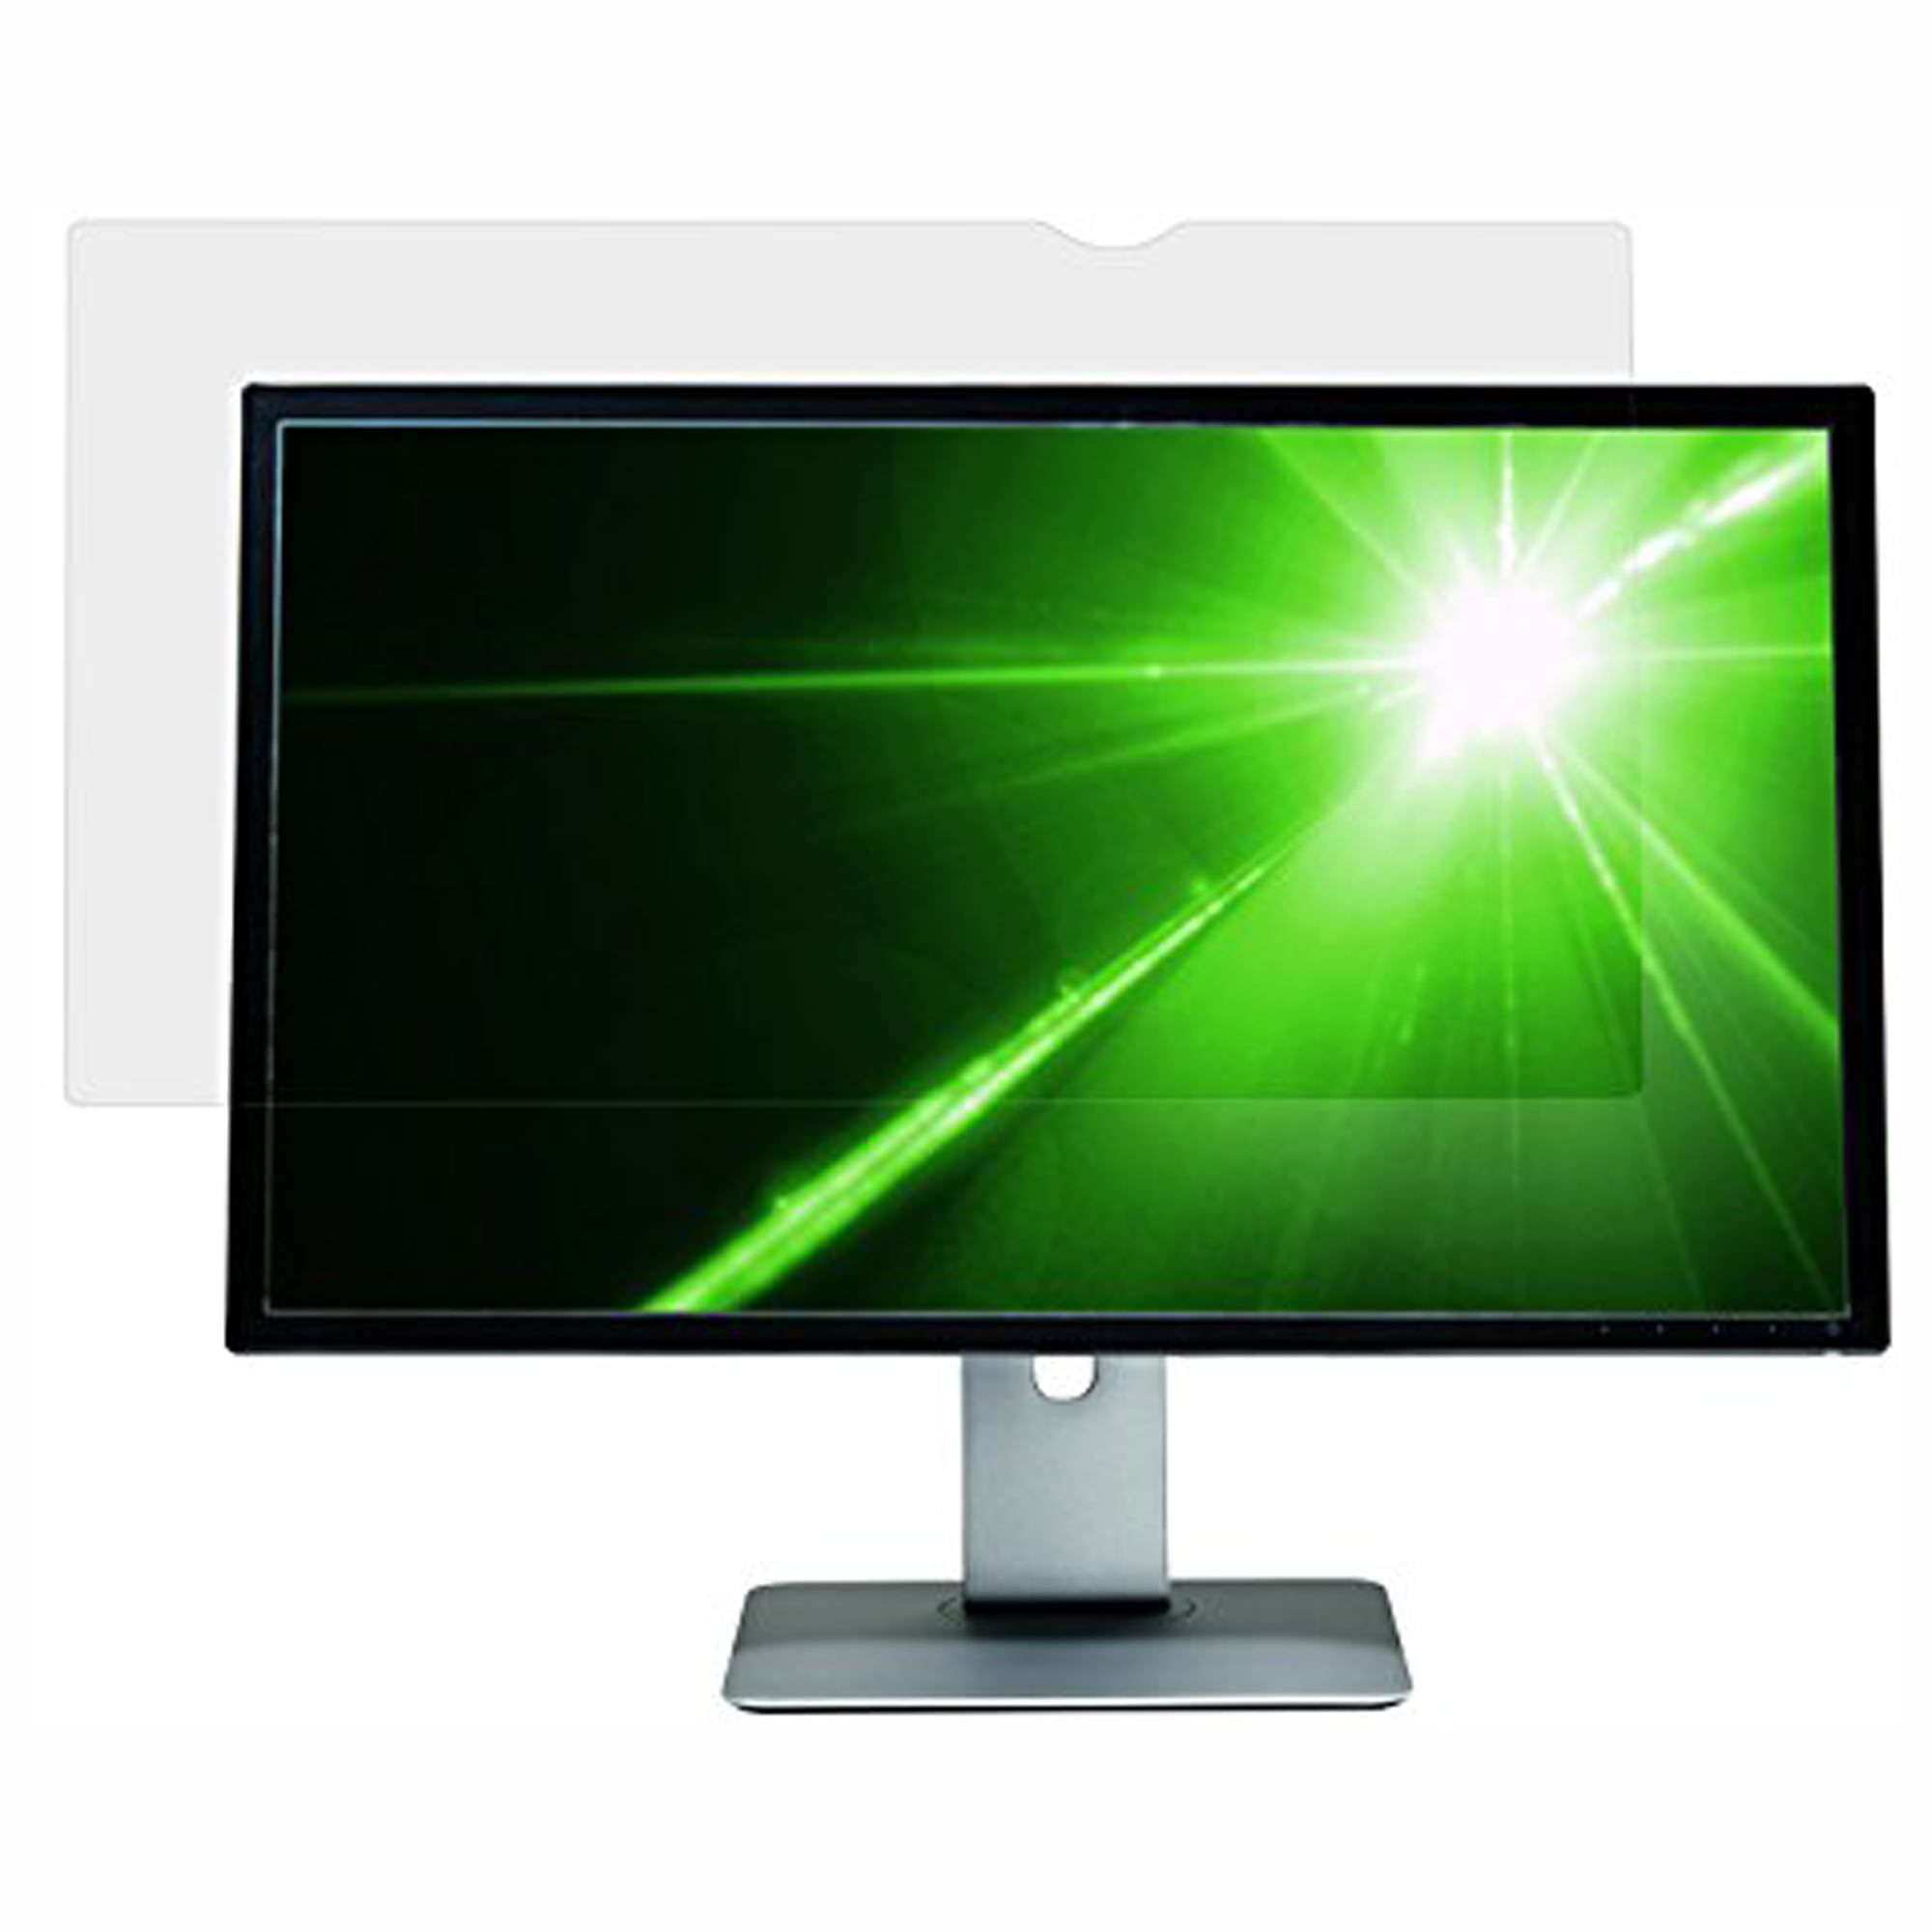 "3M Anti-Glare Filter for 27"" Widescreen Monitor (Monitor sold separately)"